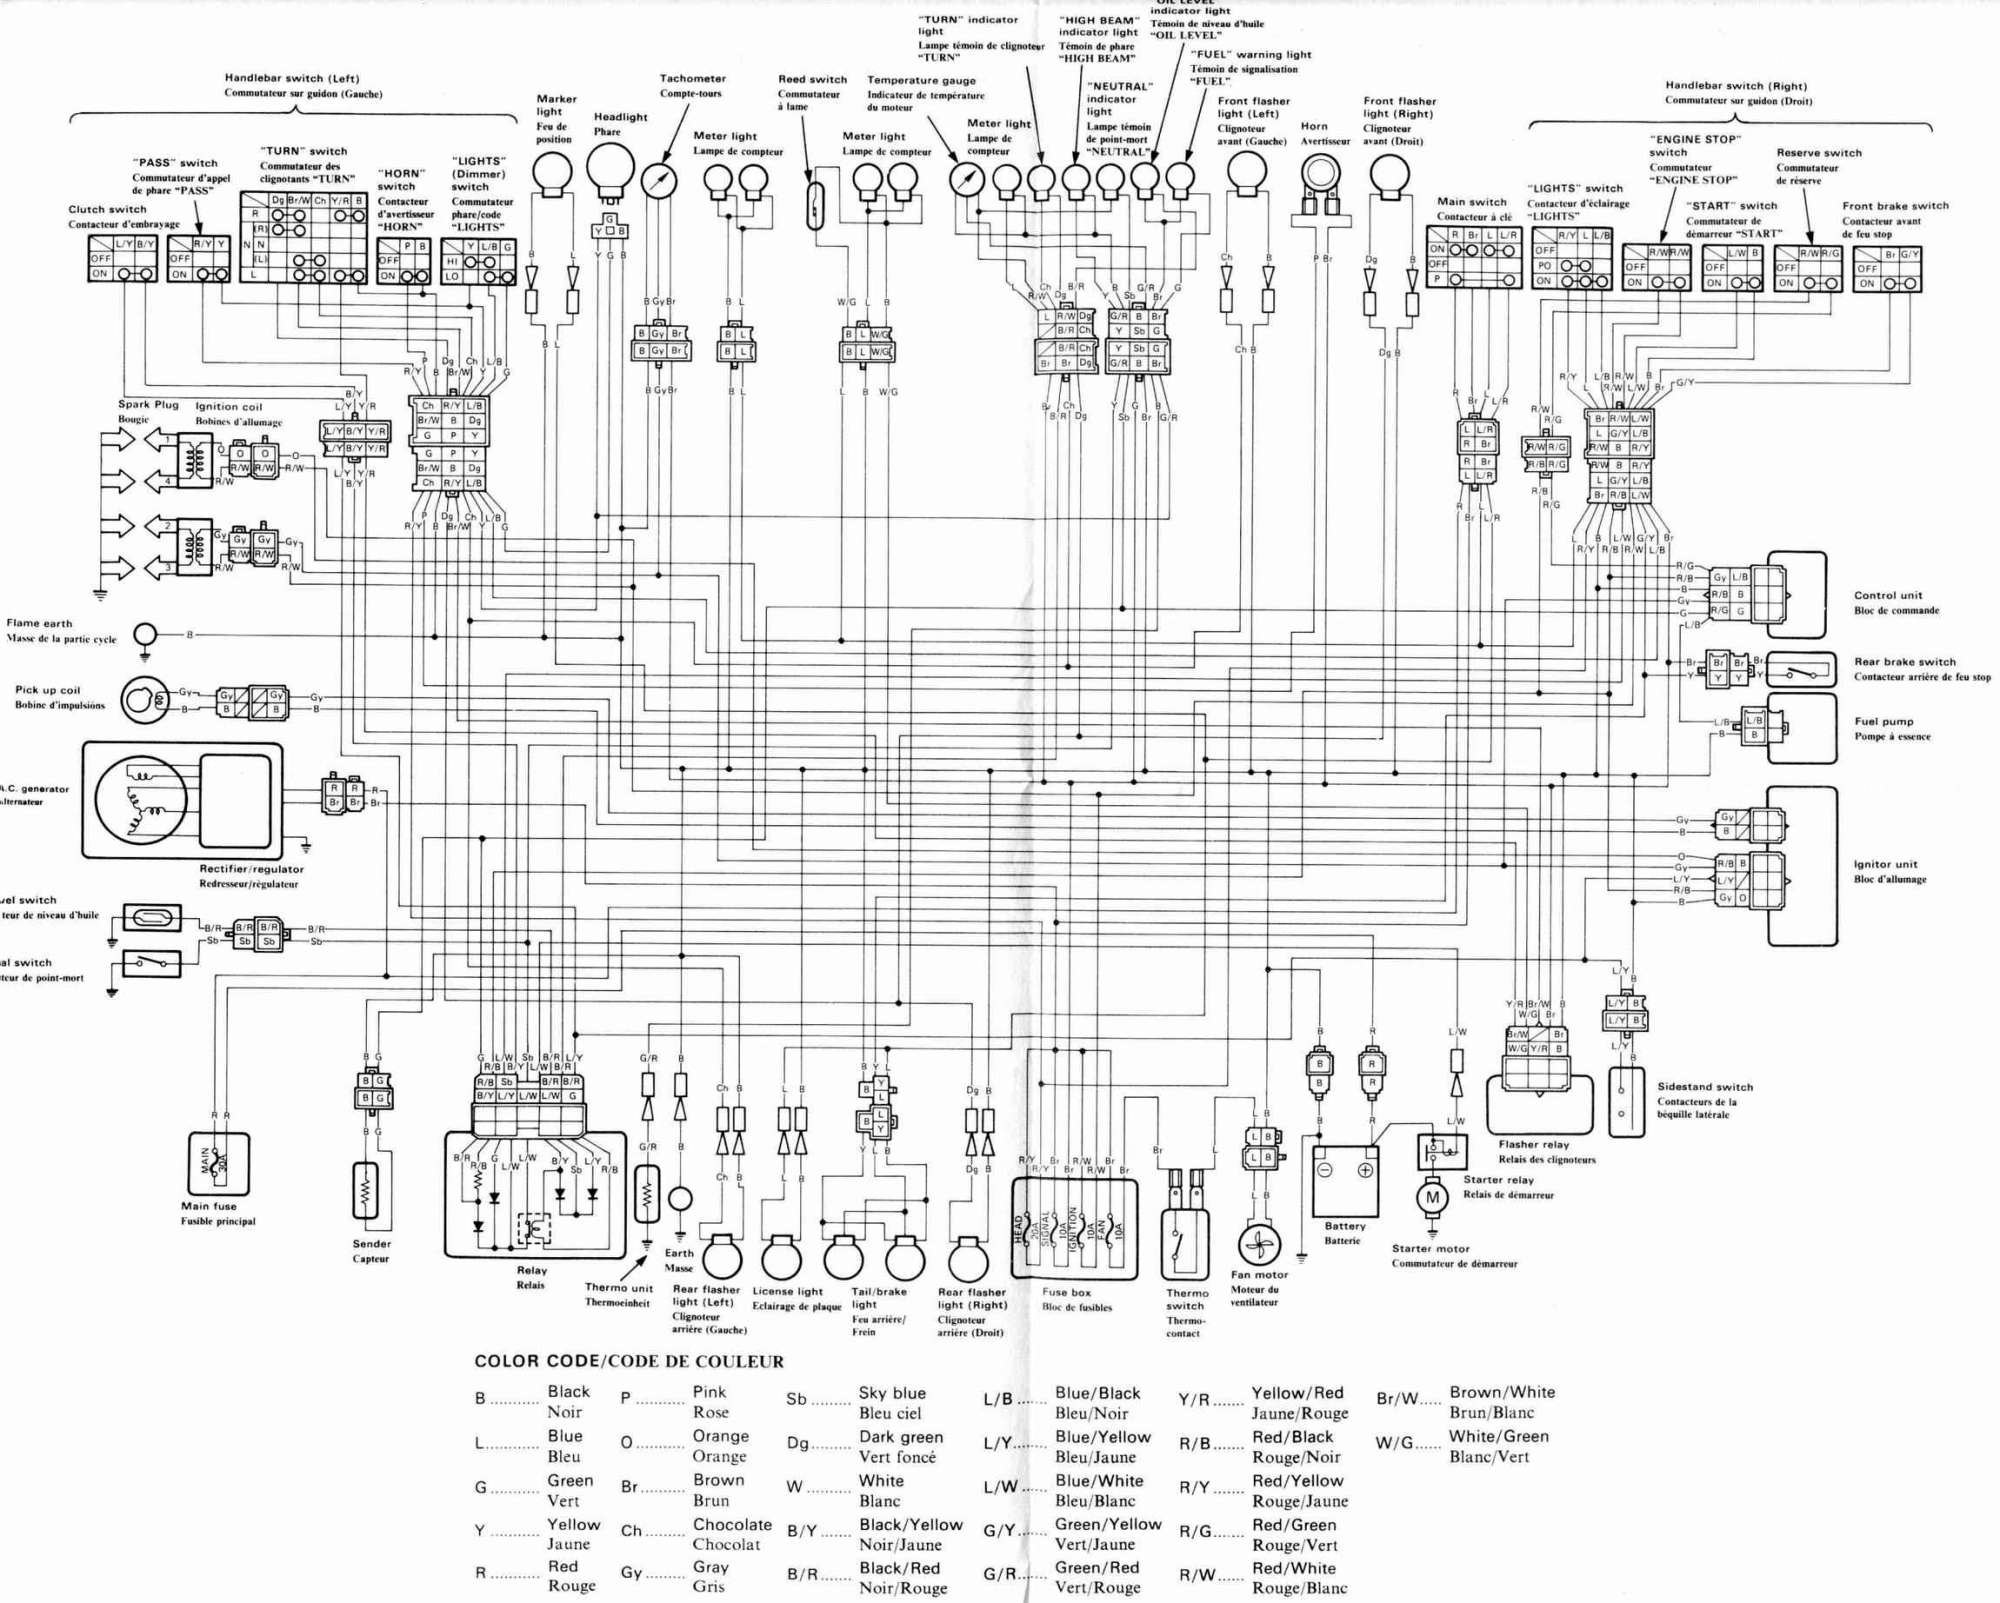 hight resolution of fzr 600 wiring diagram wiring diagram blogs basic electrical schematic diagrams fzr 600 wiring diagram trusted